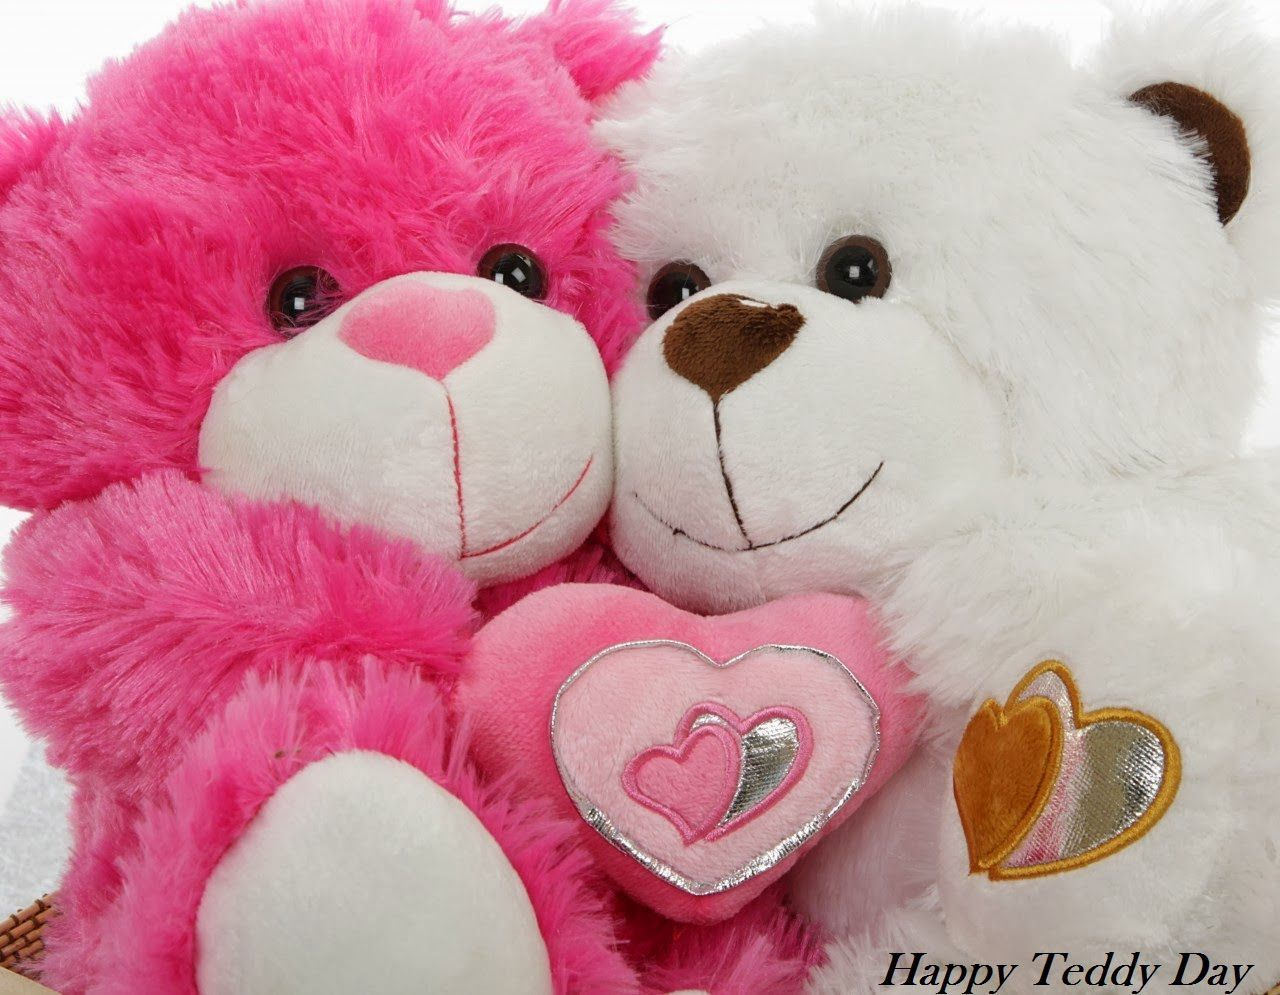 Hd wallpaper you need - Happy Teddy Day Images Pictures Hd Wallpapers For Facebook Best